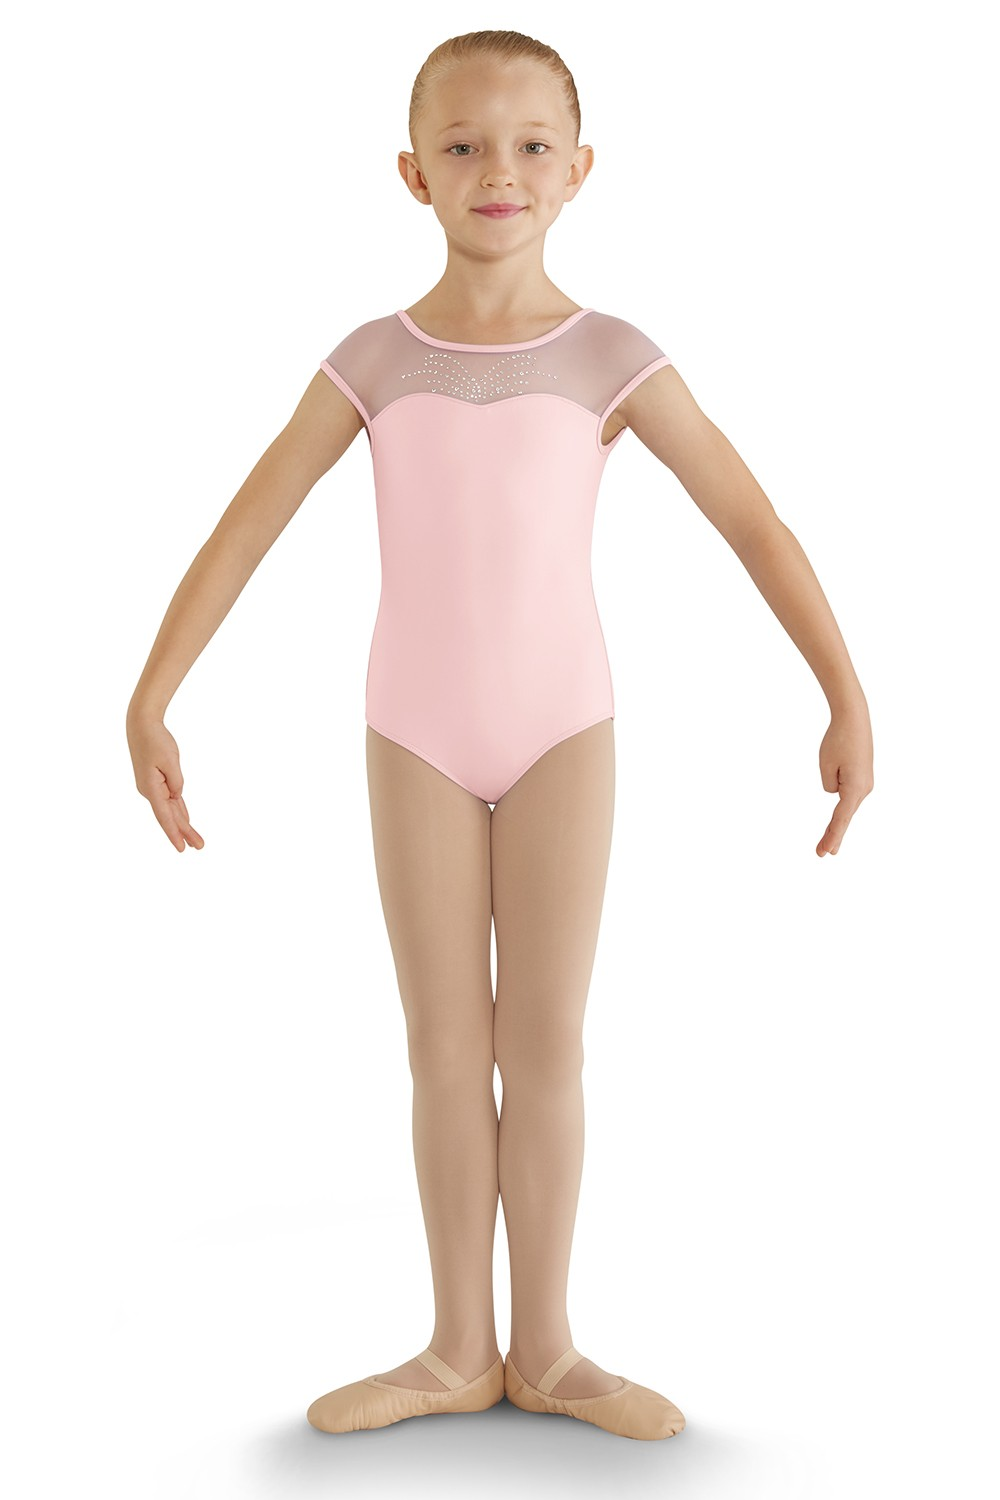 Cygni Children's Dance Leotards